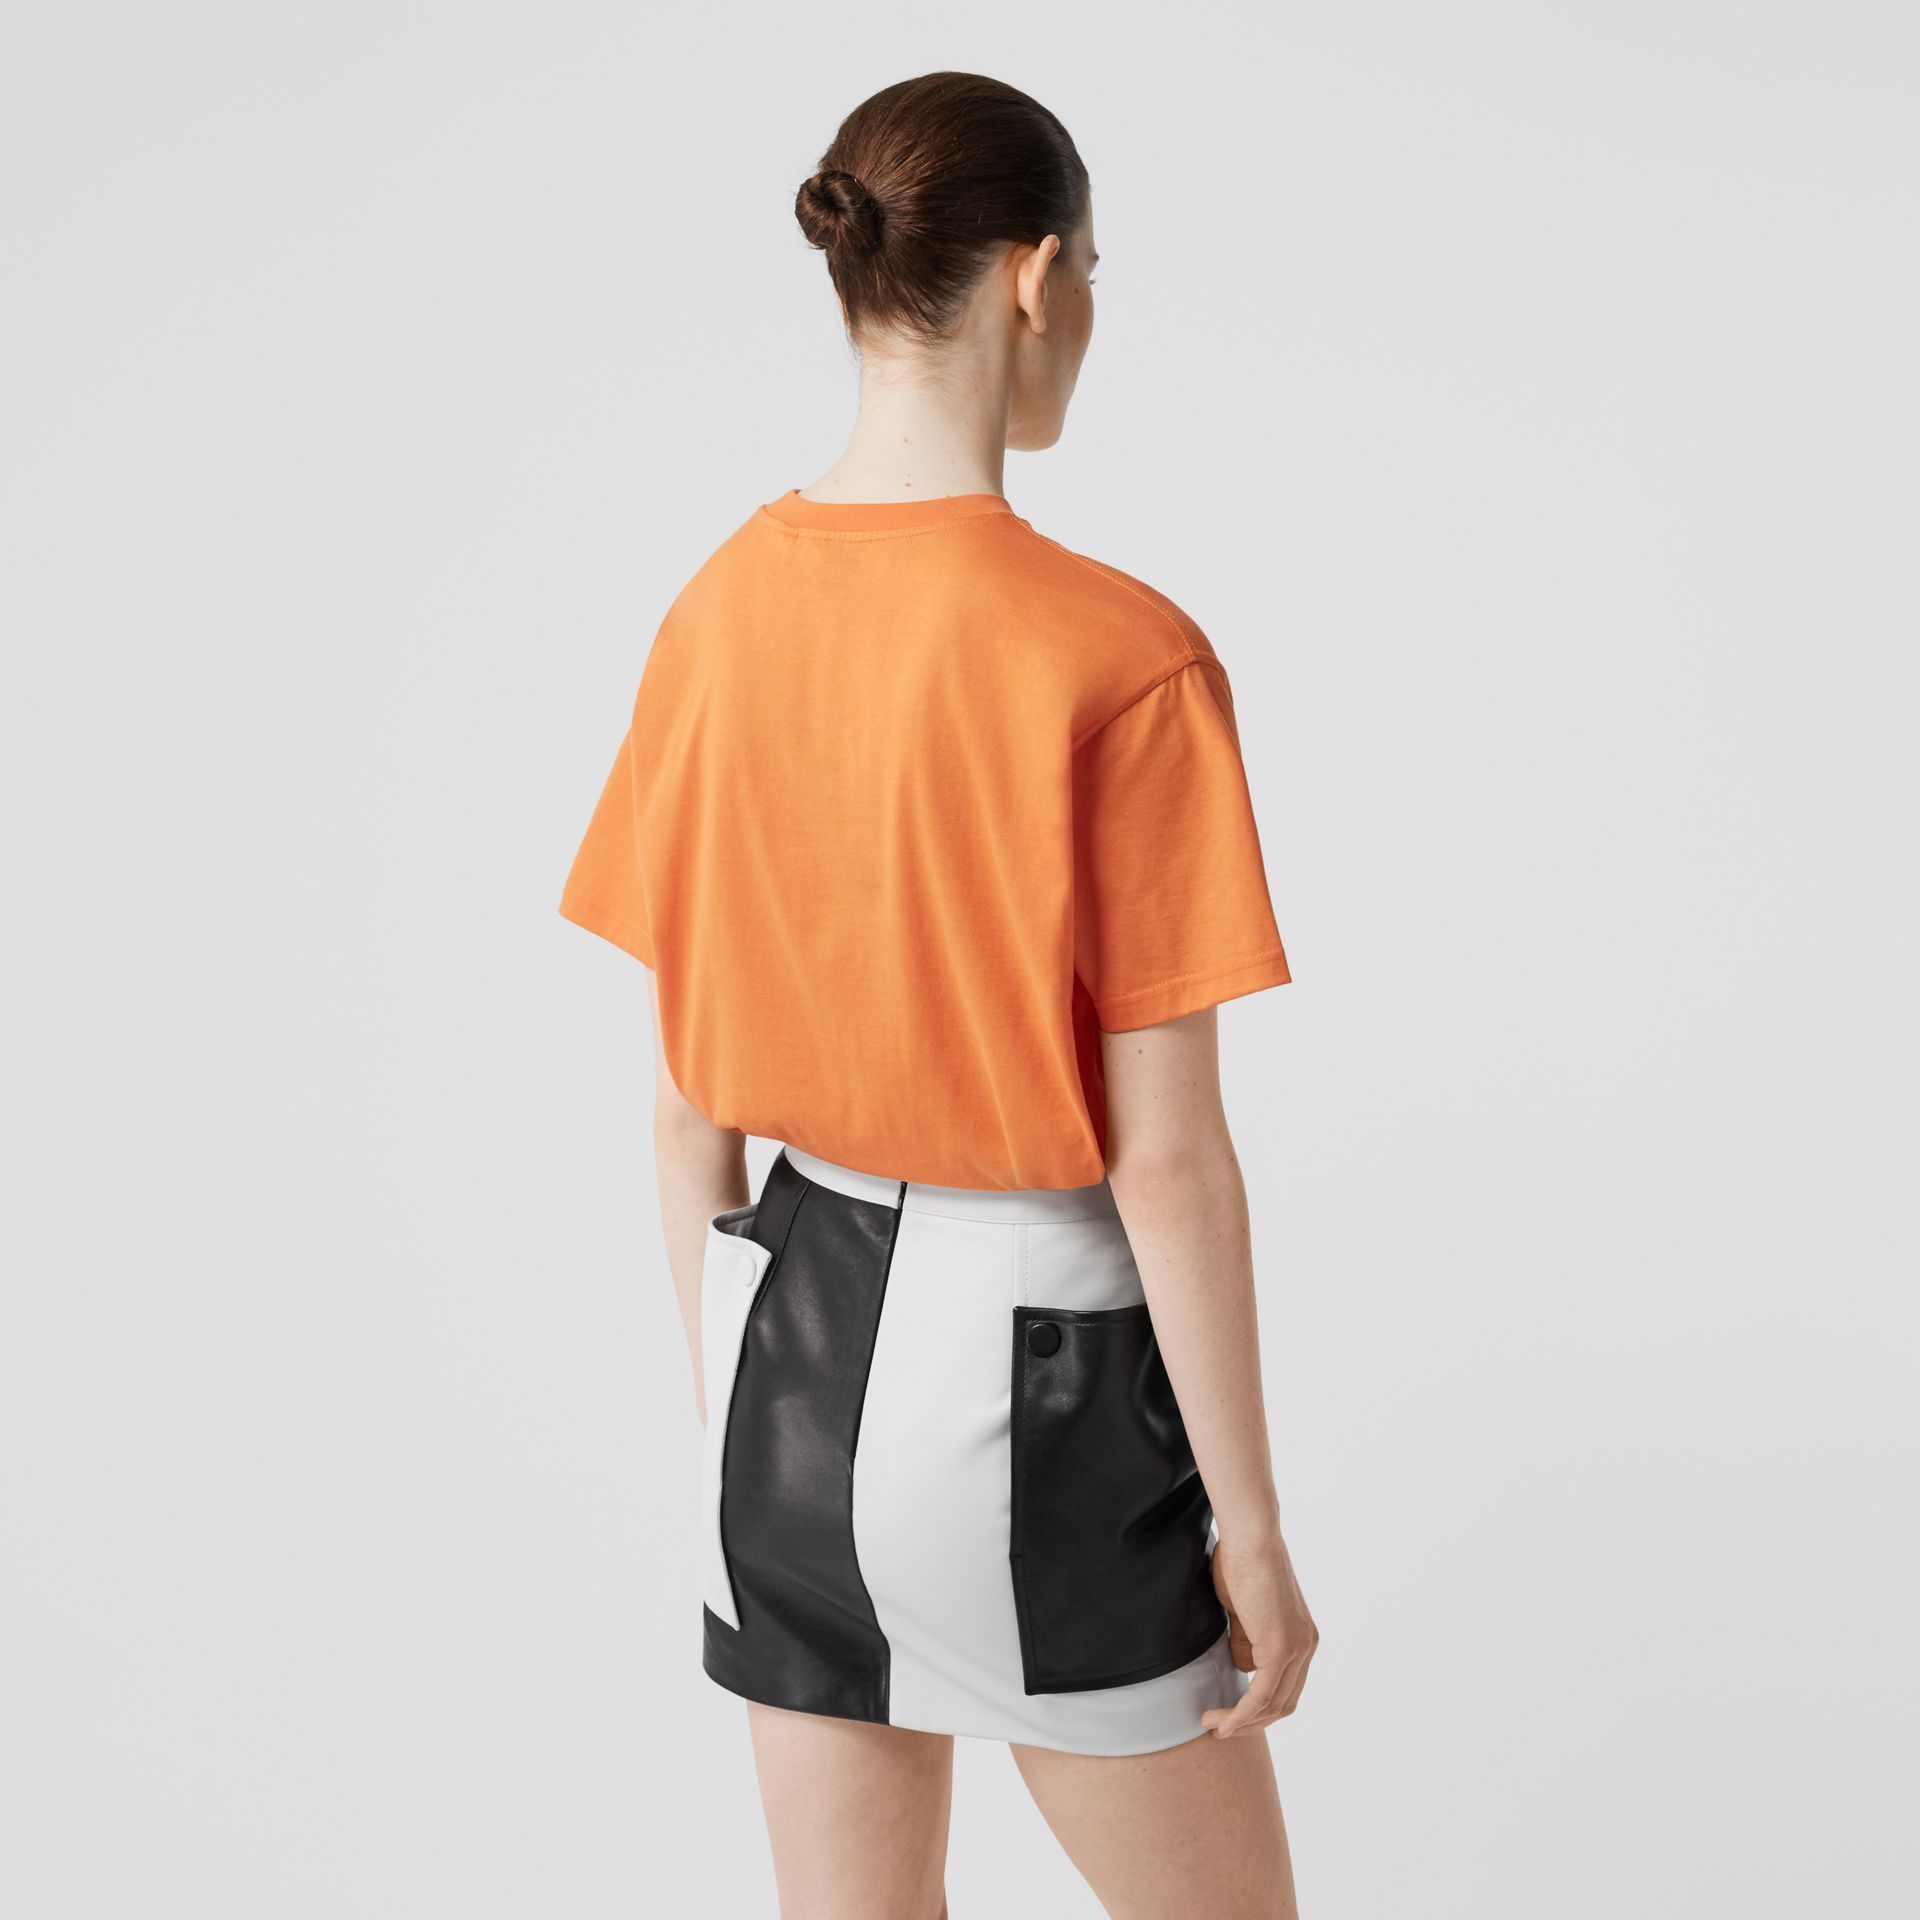 Embroidered Logo Cotton Oversized T-shirt in Bright Orange - Women | Burberry Hong Kong S.A.R - gallery image 2